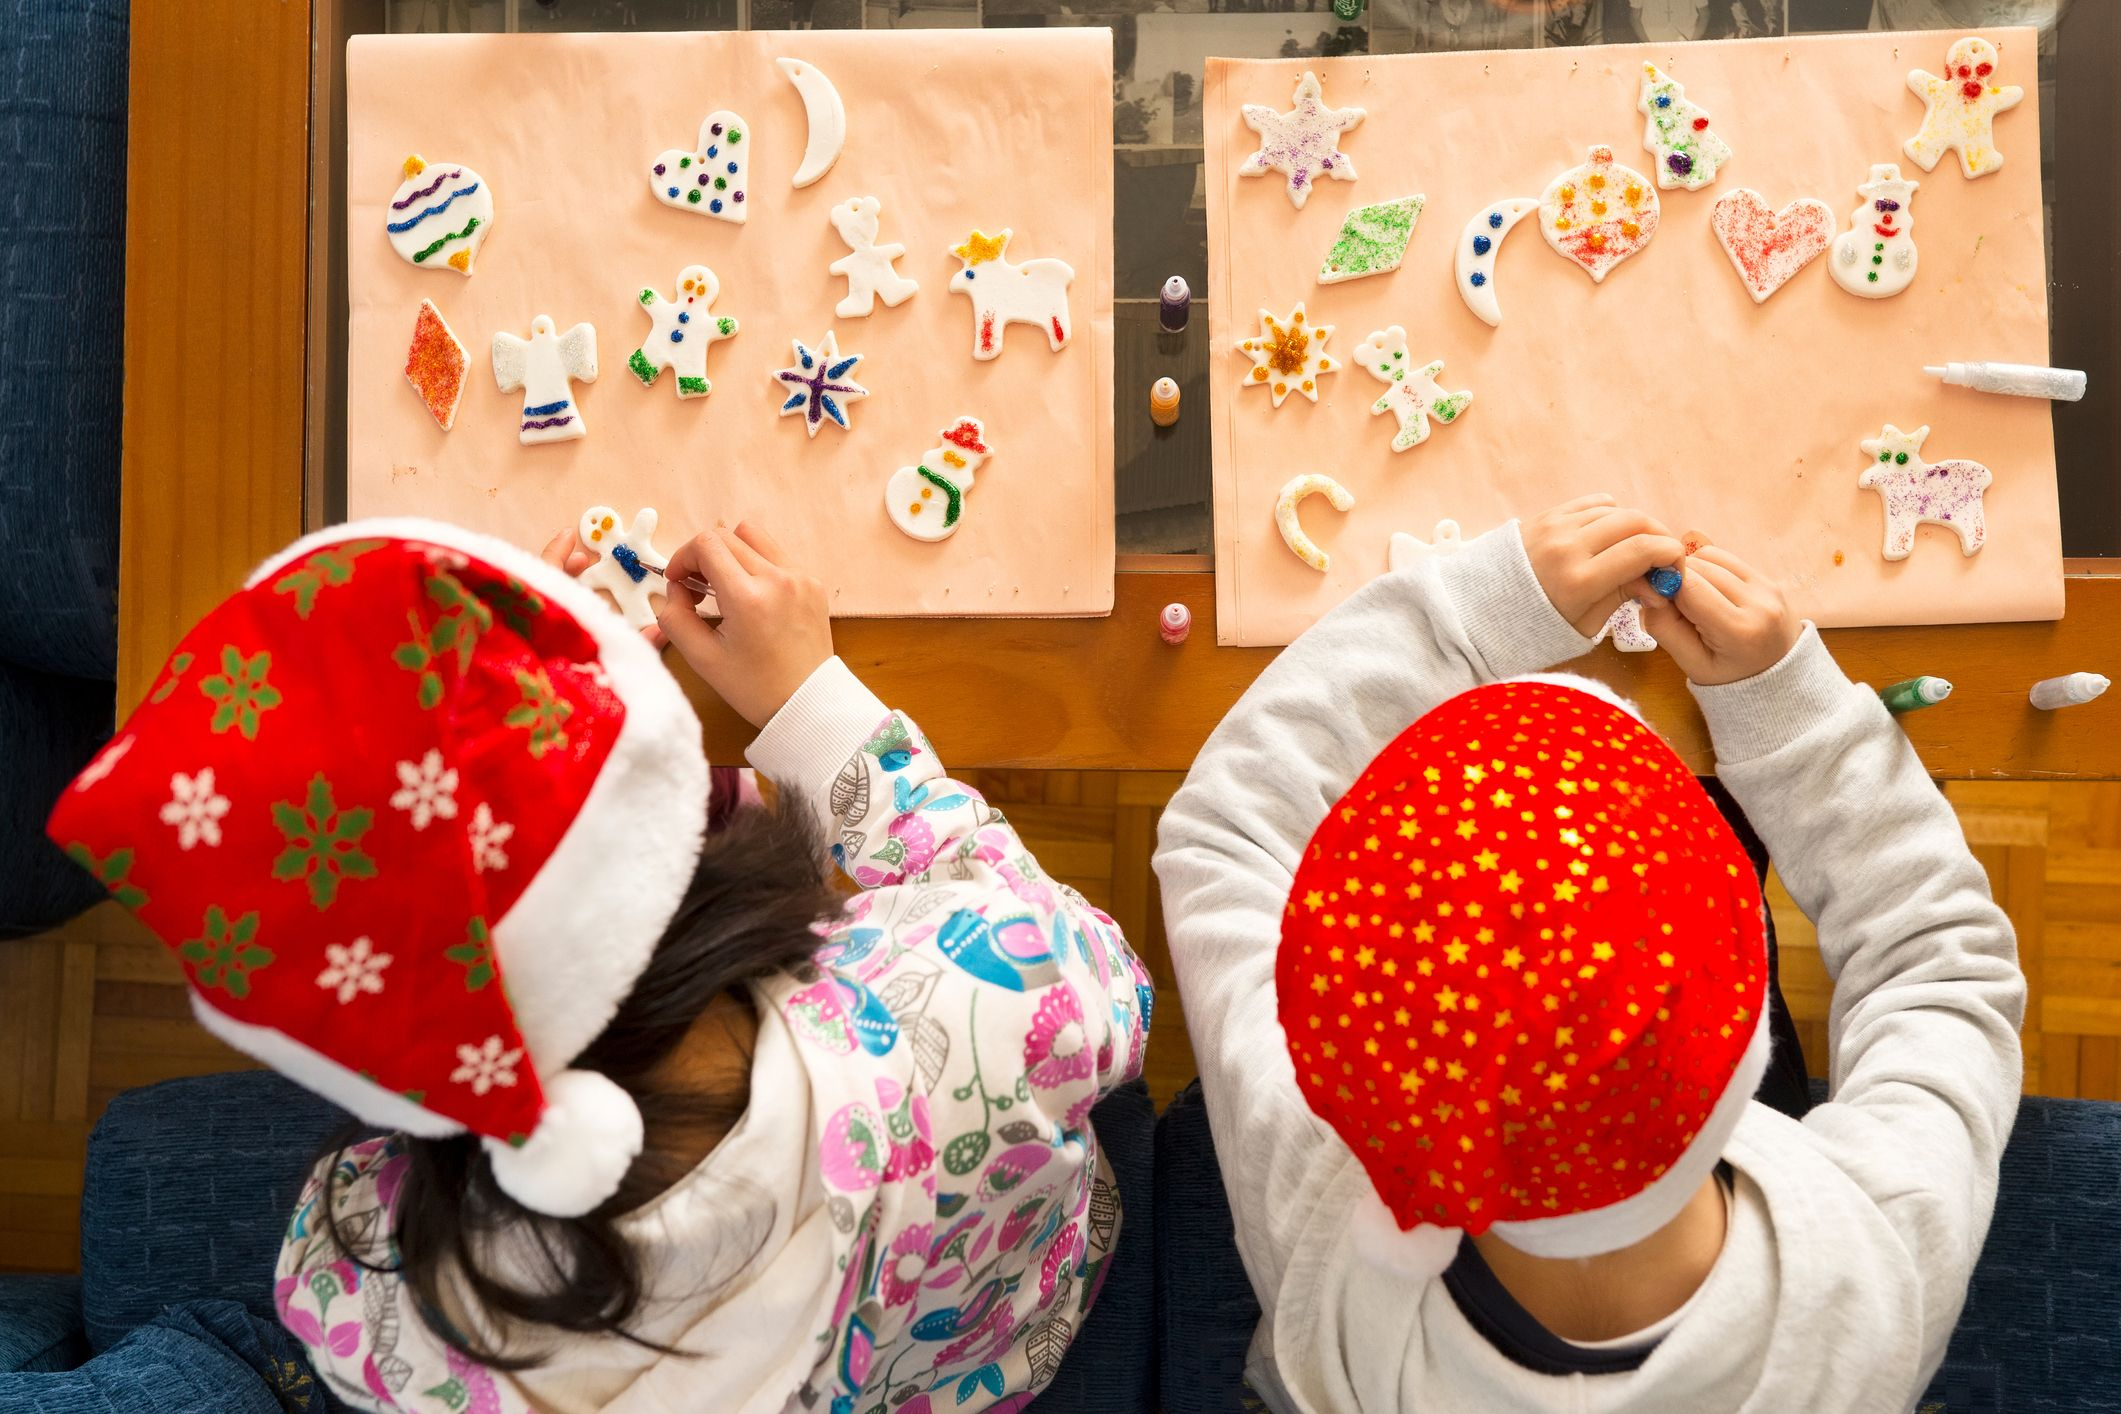 29 Best Christmas Games for Kids They'll Want to Play for Hours